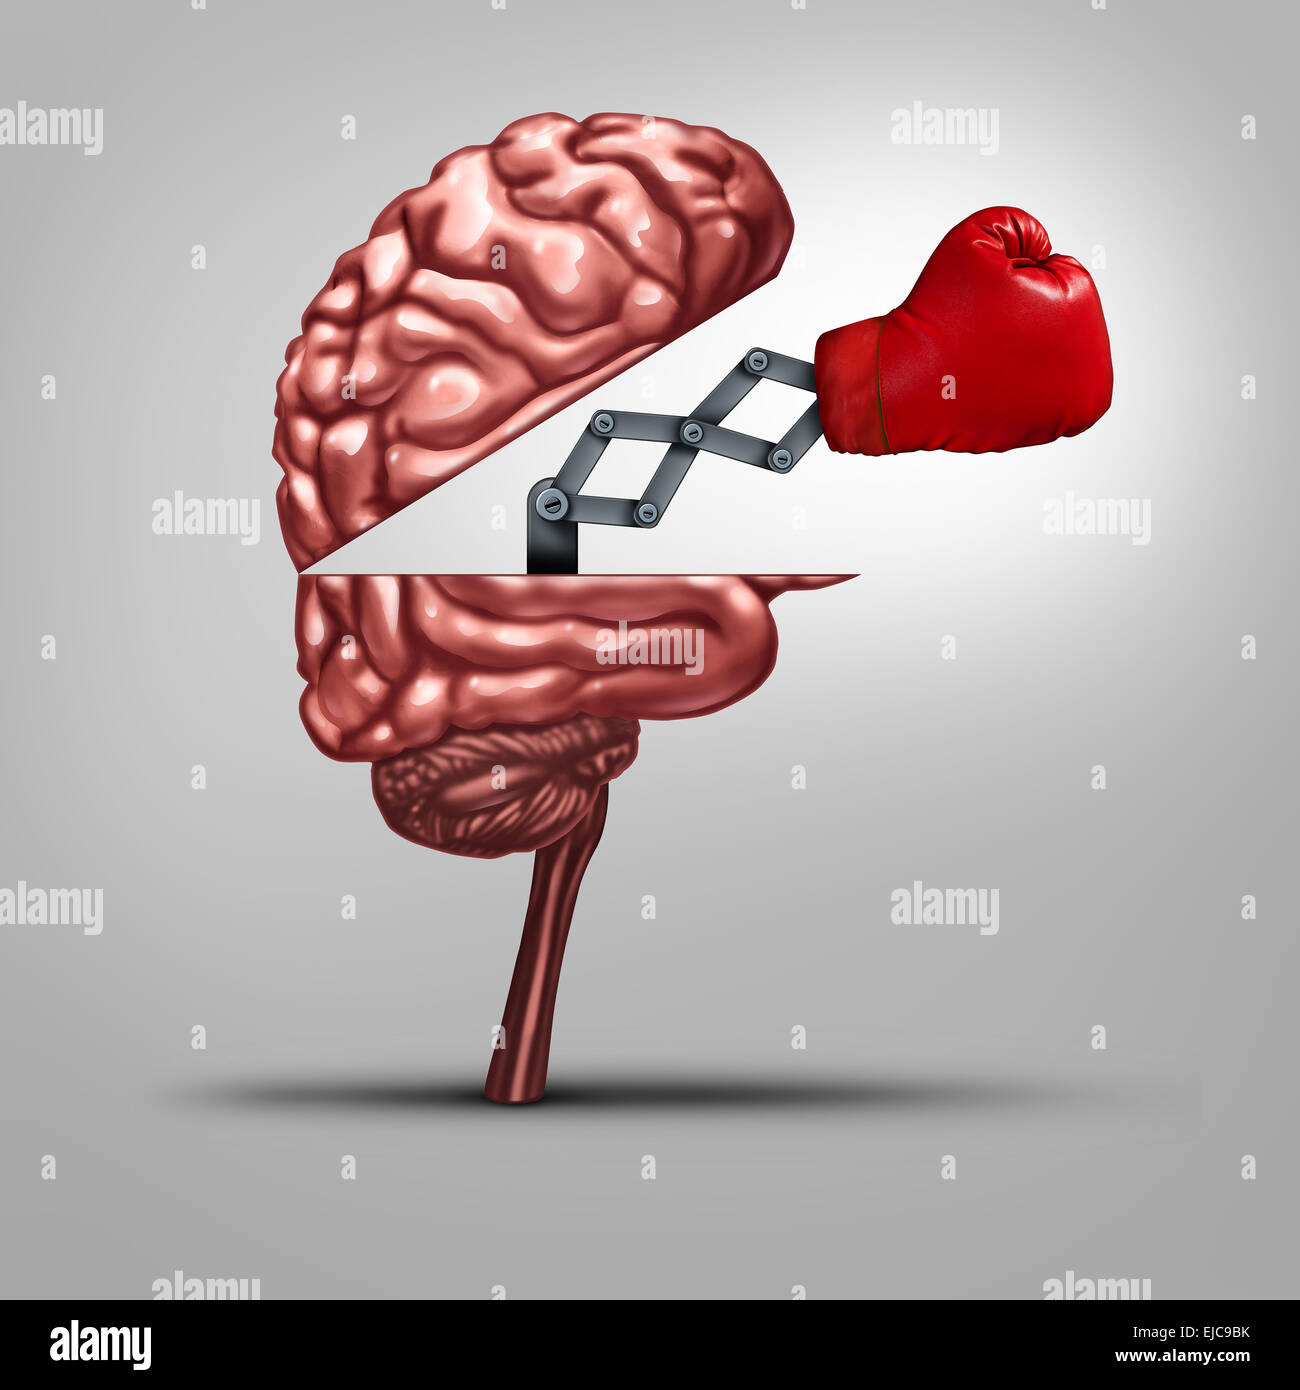 Strong memory and brain strength symbol as a human thinking organ opened to reveal a boxing glove as a concept for - Stock Image